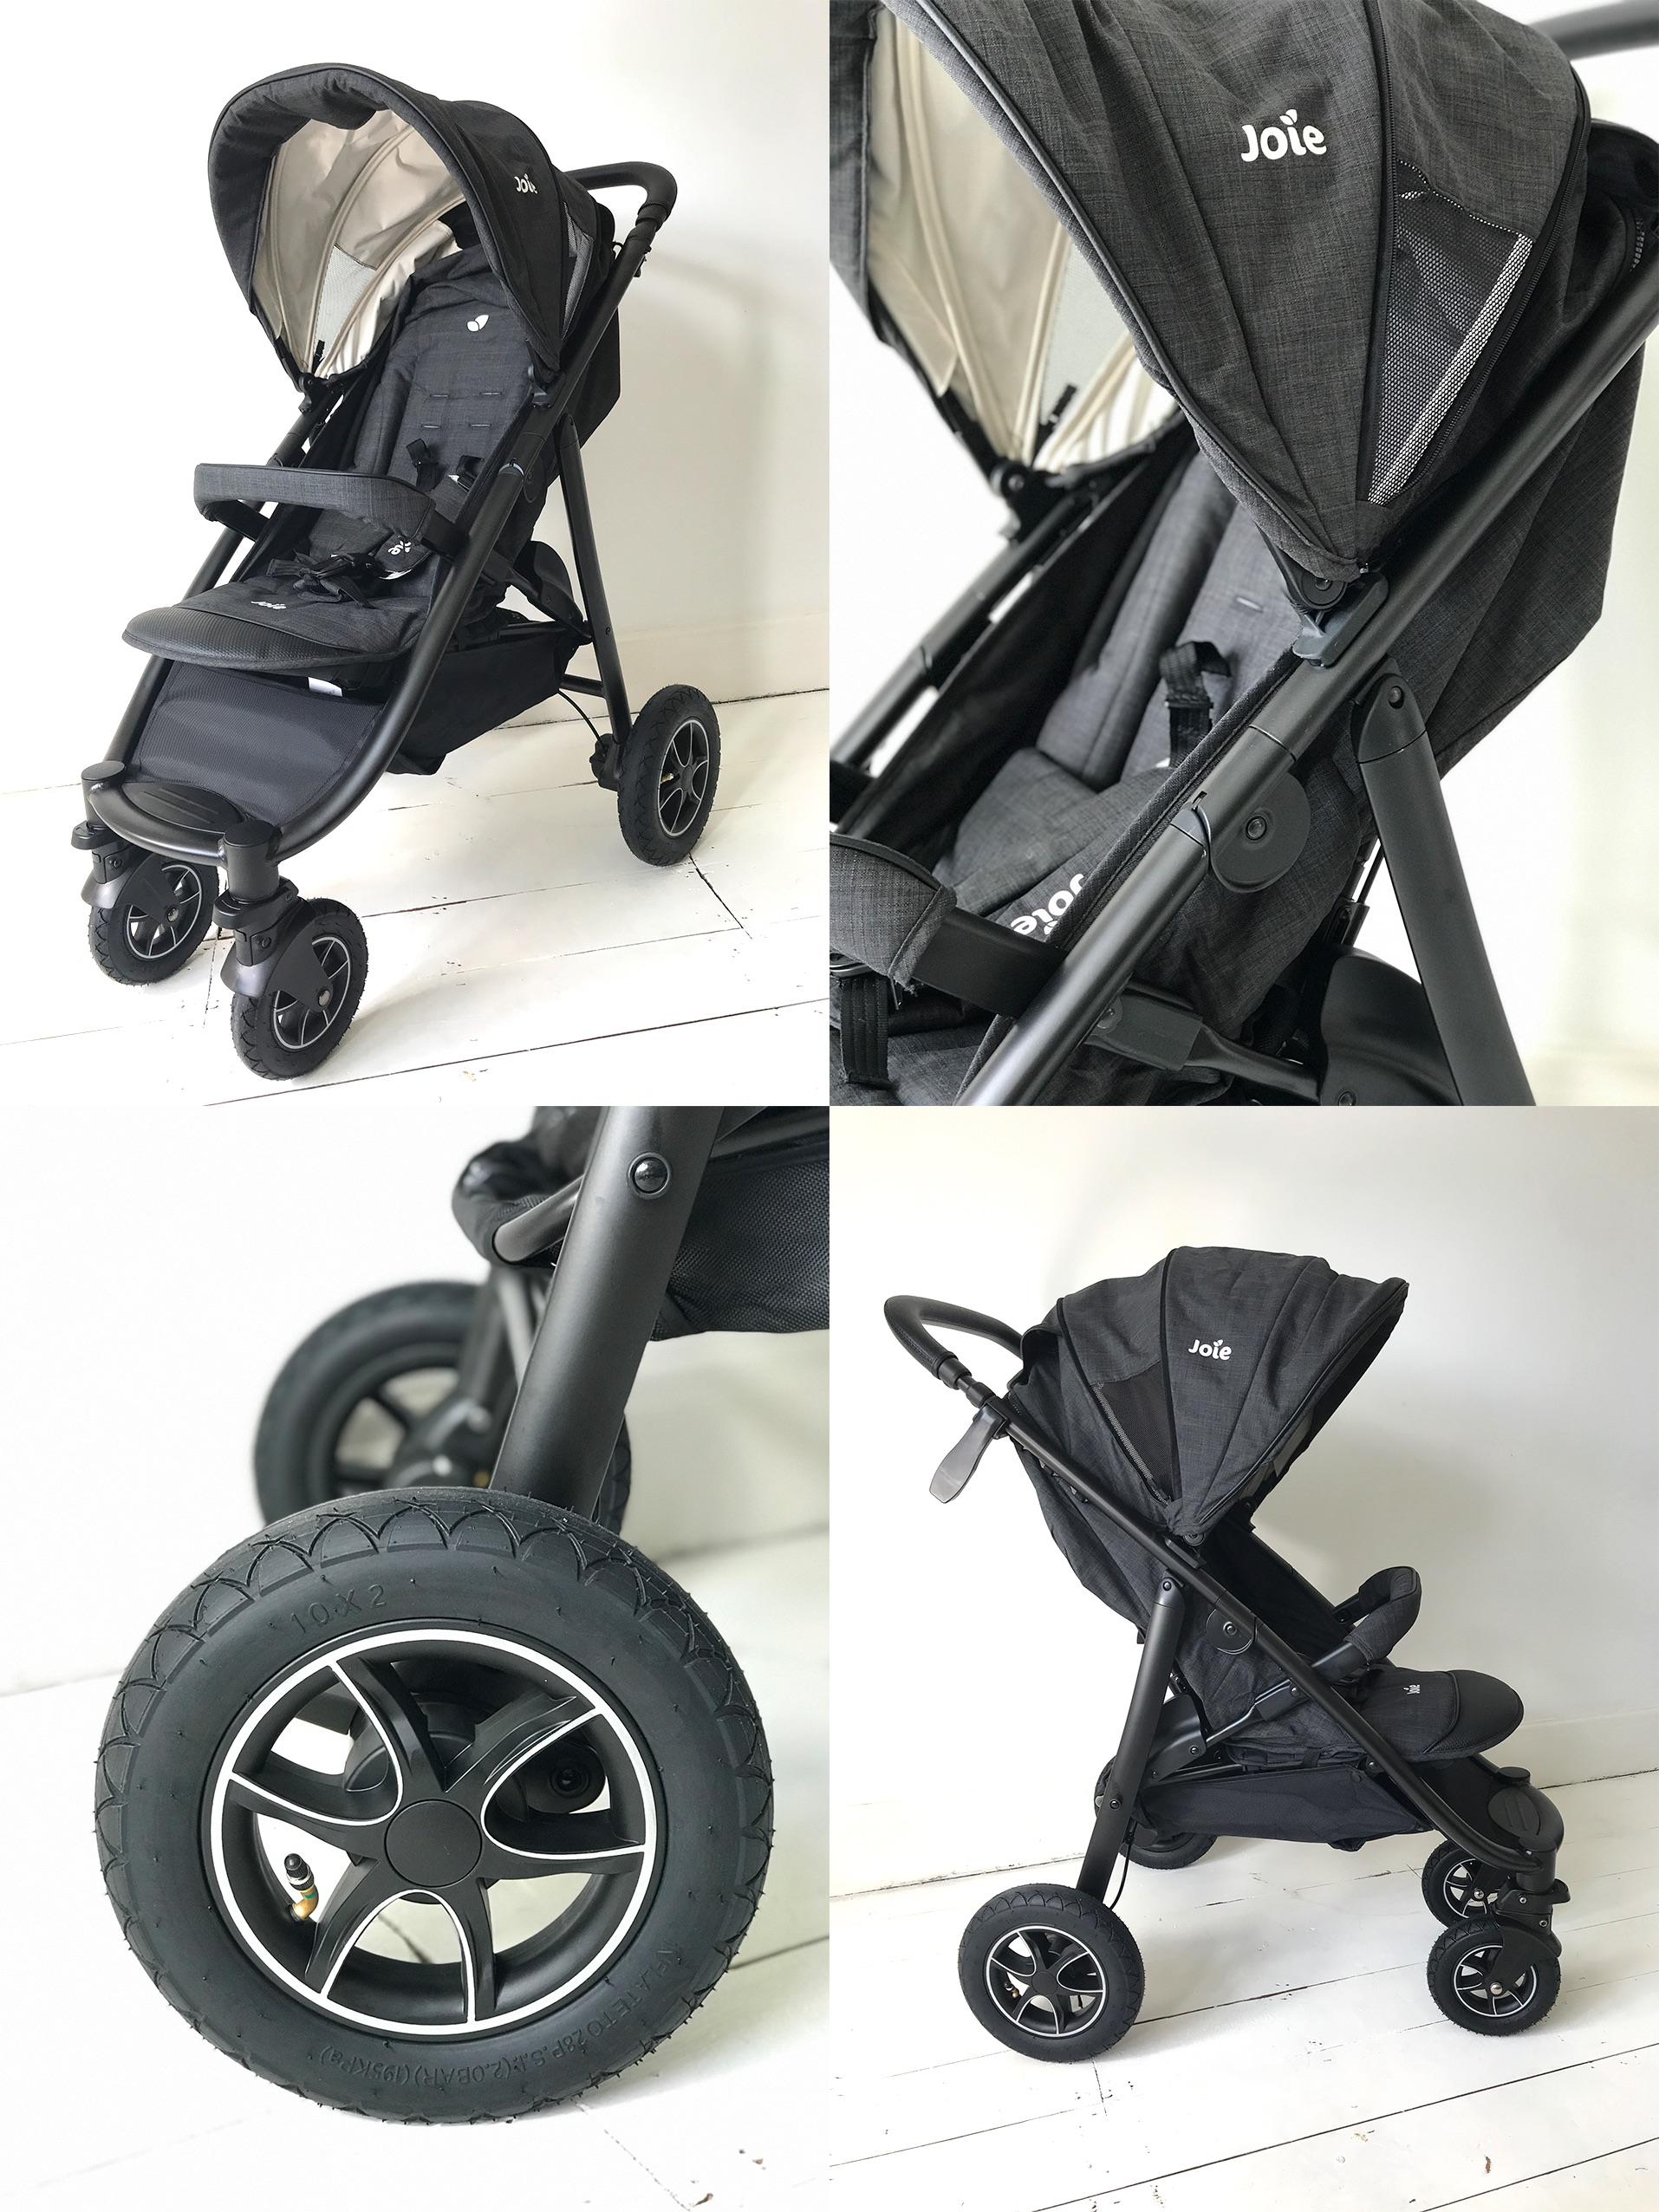 Dadsnet reviews 6 of the UK's best pushchairs in 2018, Joie MyTrax%, product-review%